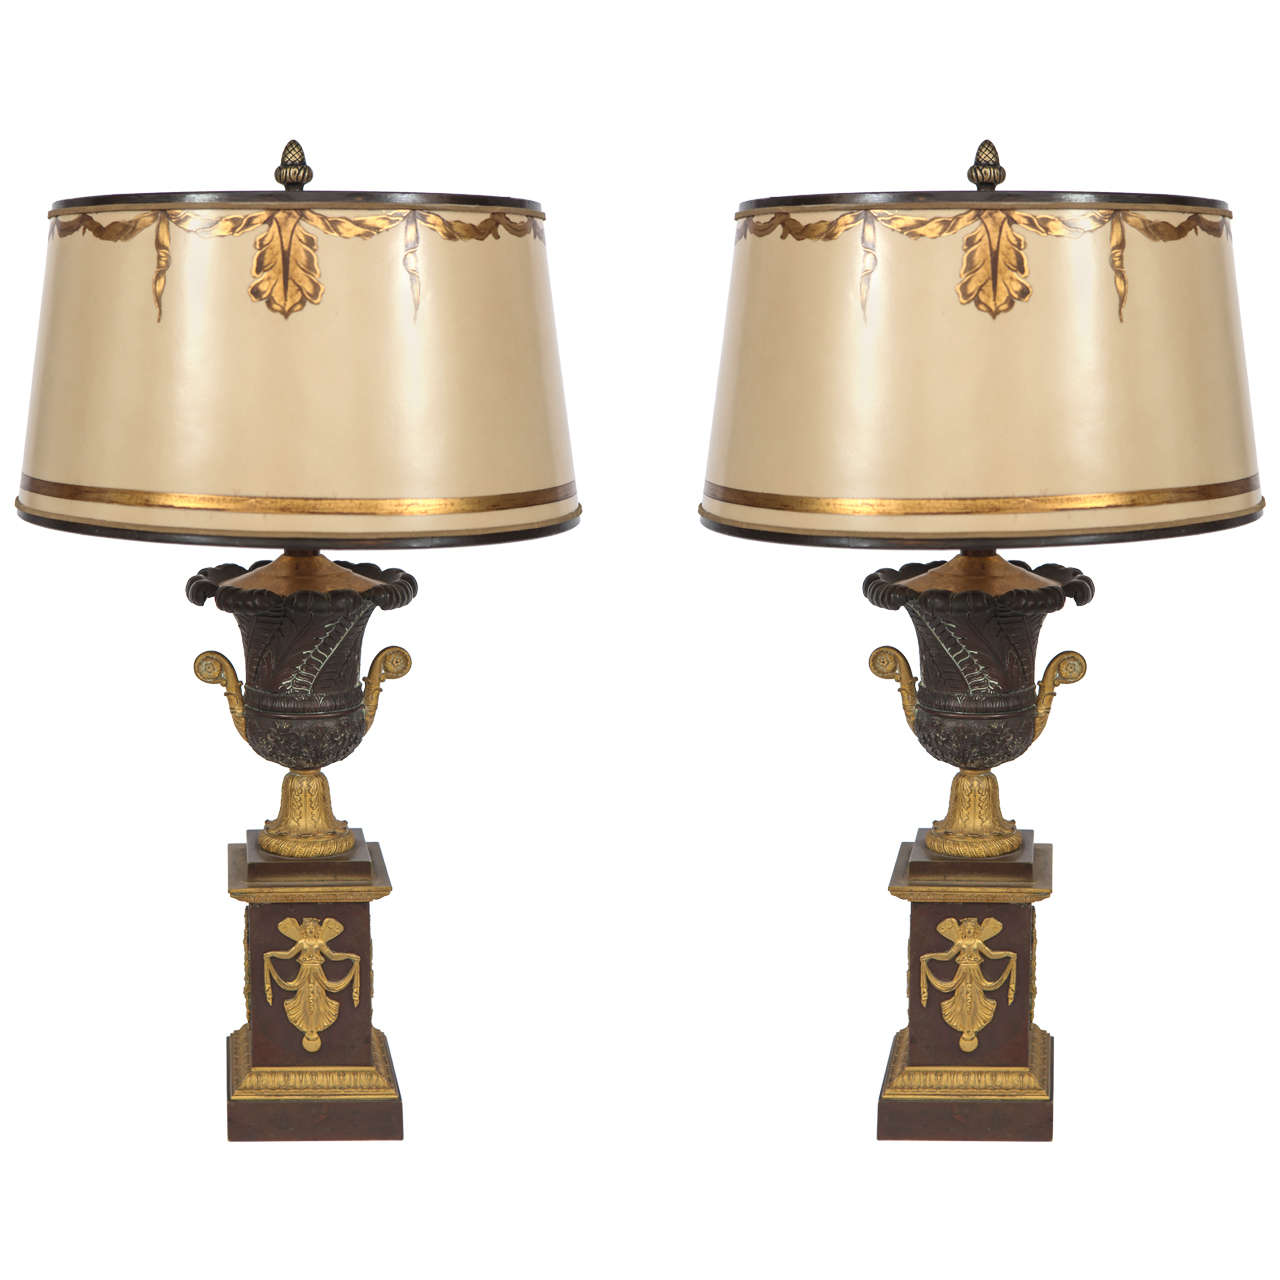 Pair of 19th Century French Empire Bronze Urn Lamps